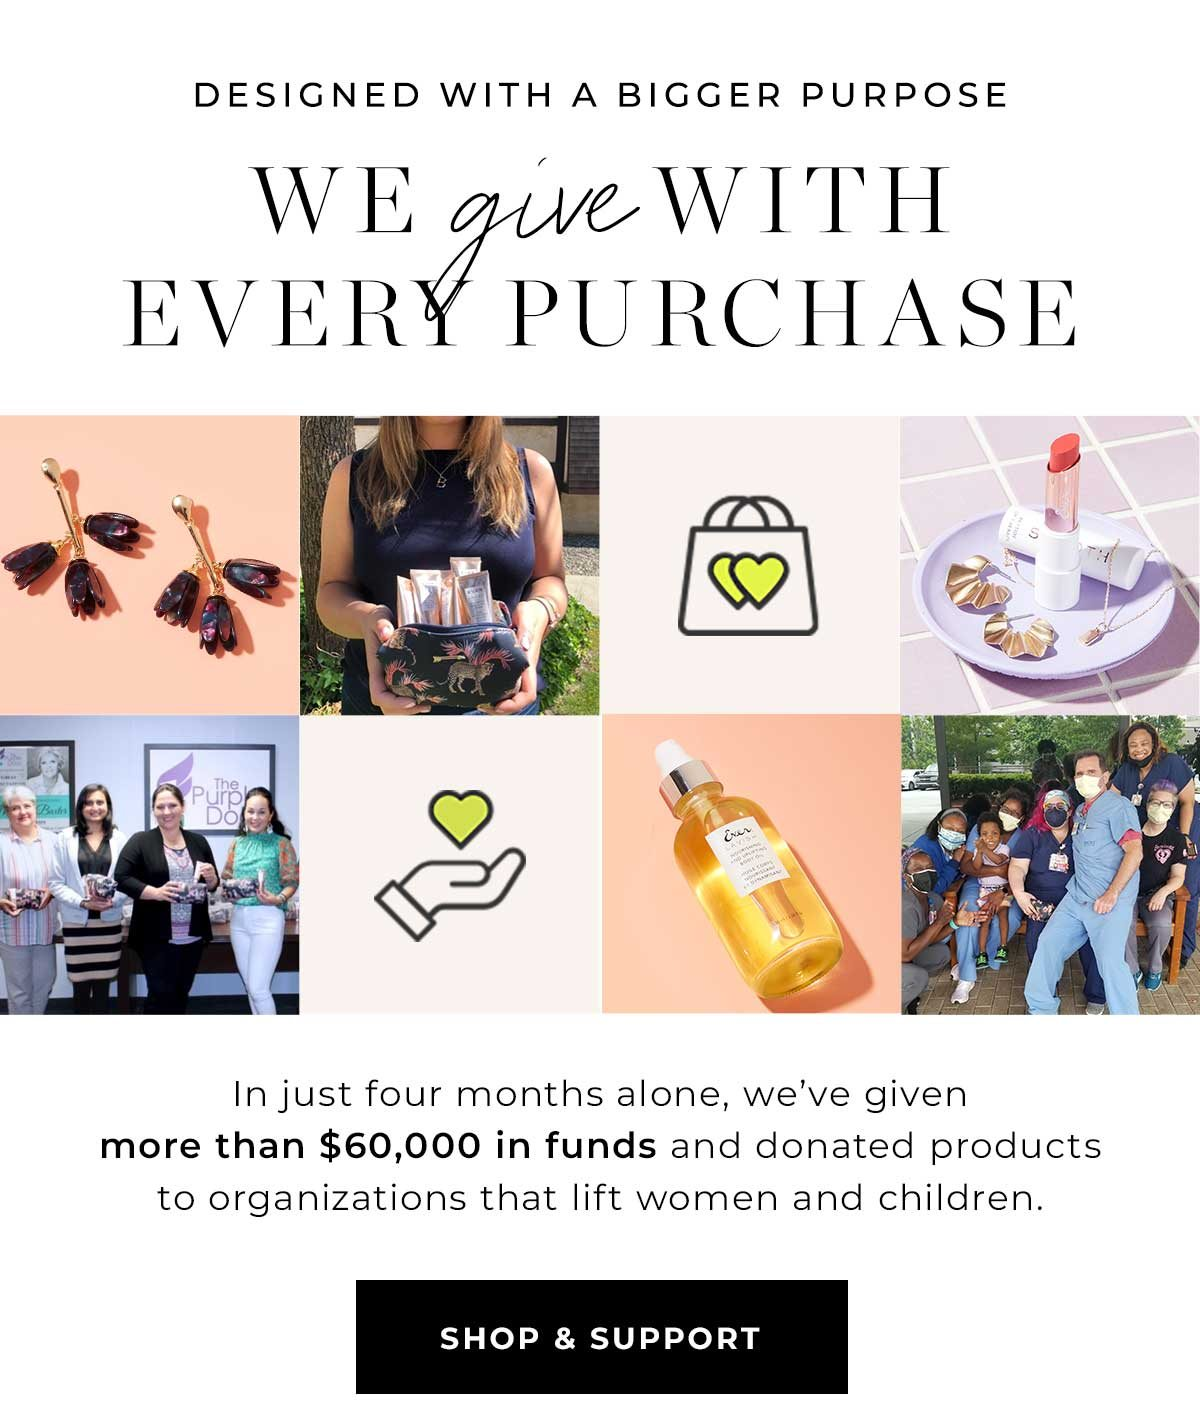 We give with every purchase. Shop & support.